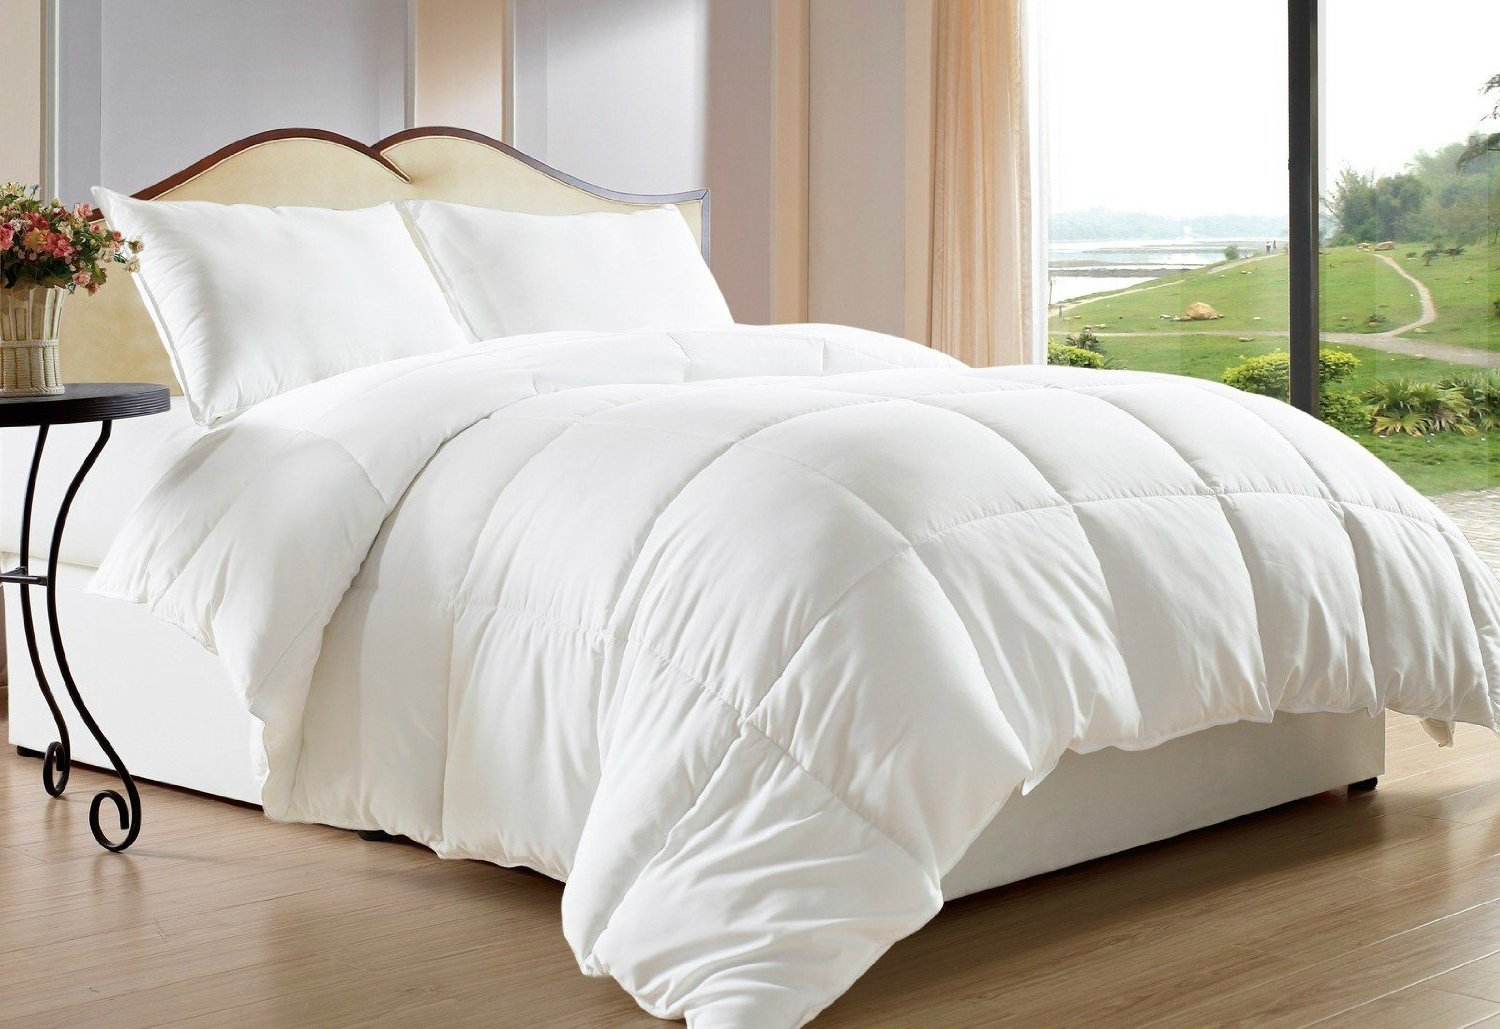 Amazoncom Twin Size Comforter Goose Down Duvet White - White comforter bedroom design ideas